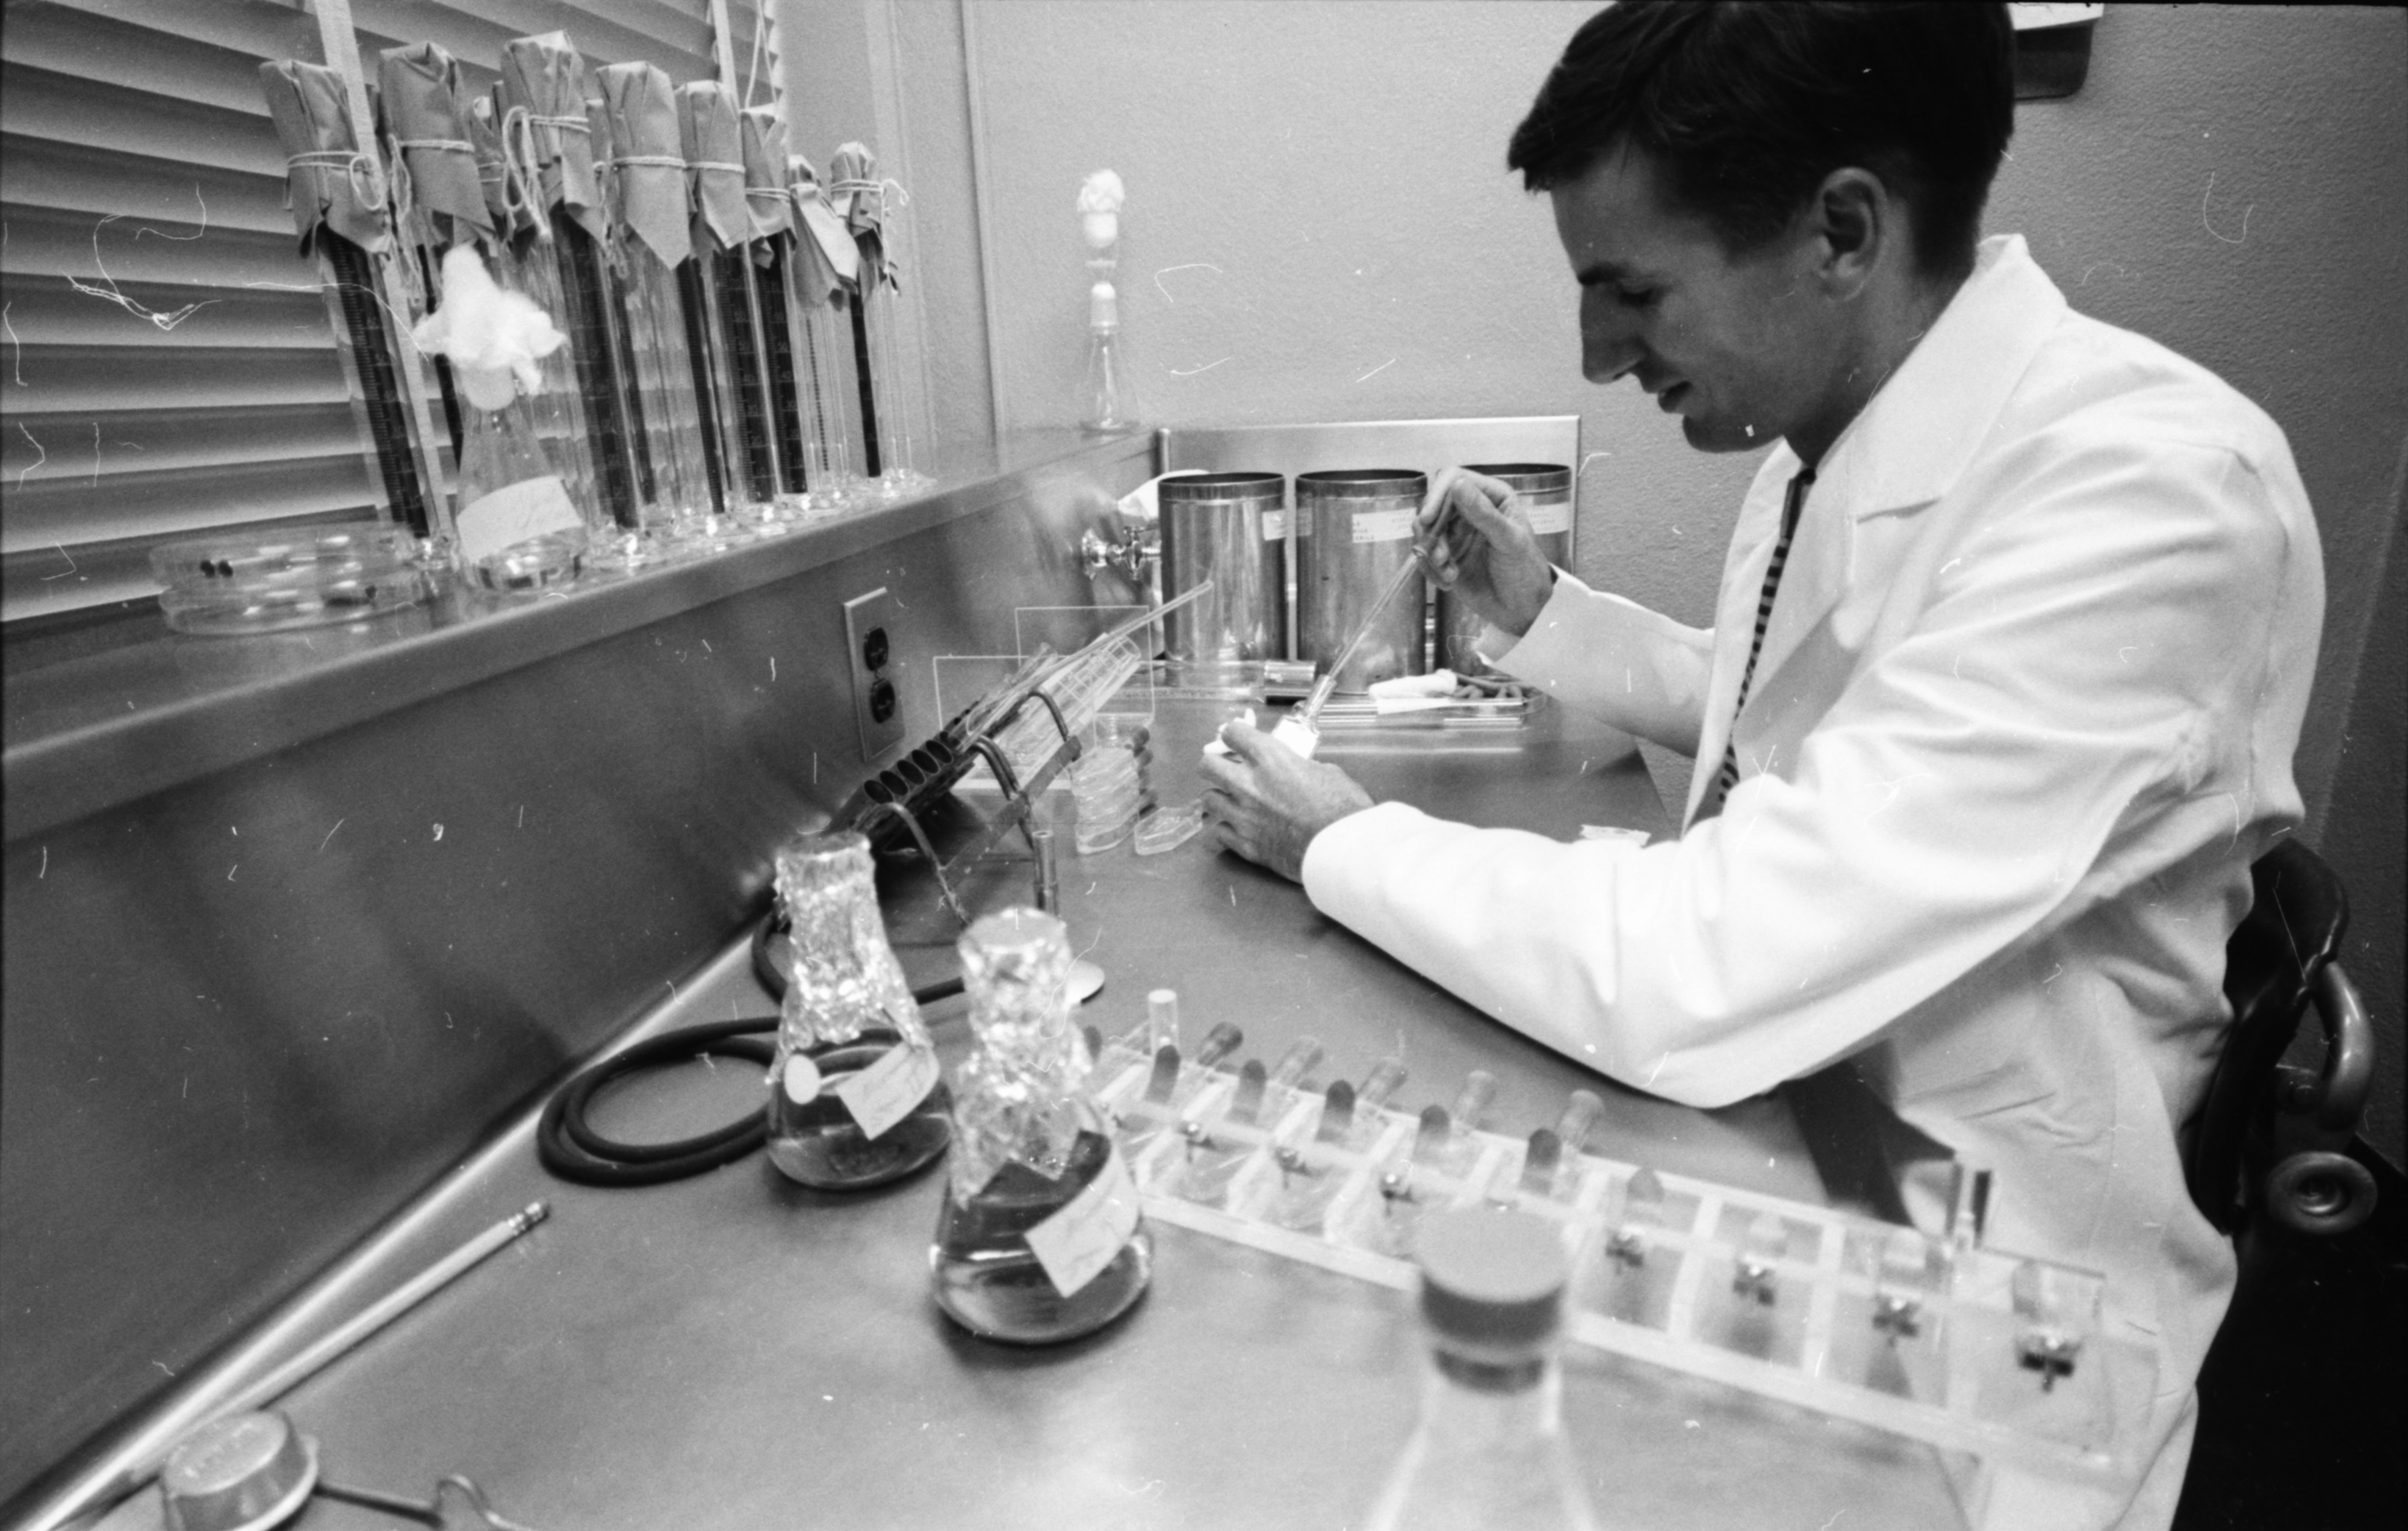 Dr. Harry C. Jordon, research associate, at the Phoenix Memorial Laboratory, August 1961 image